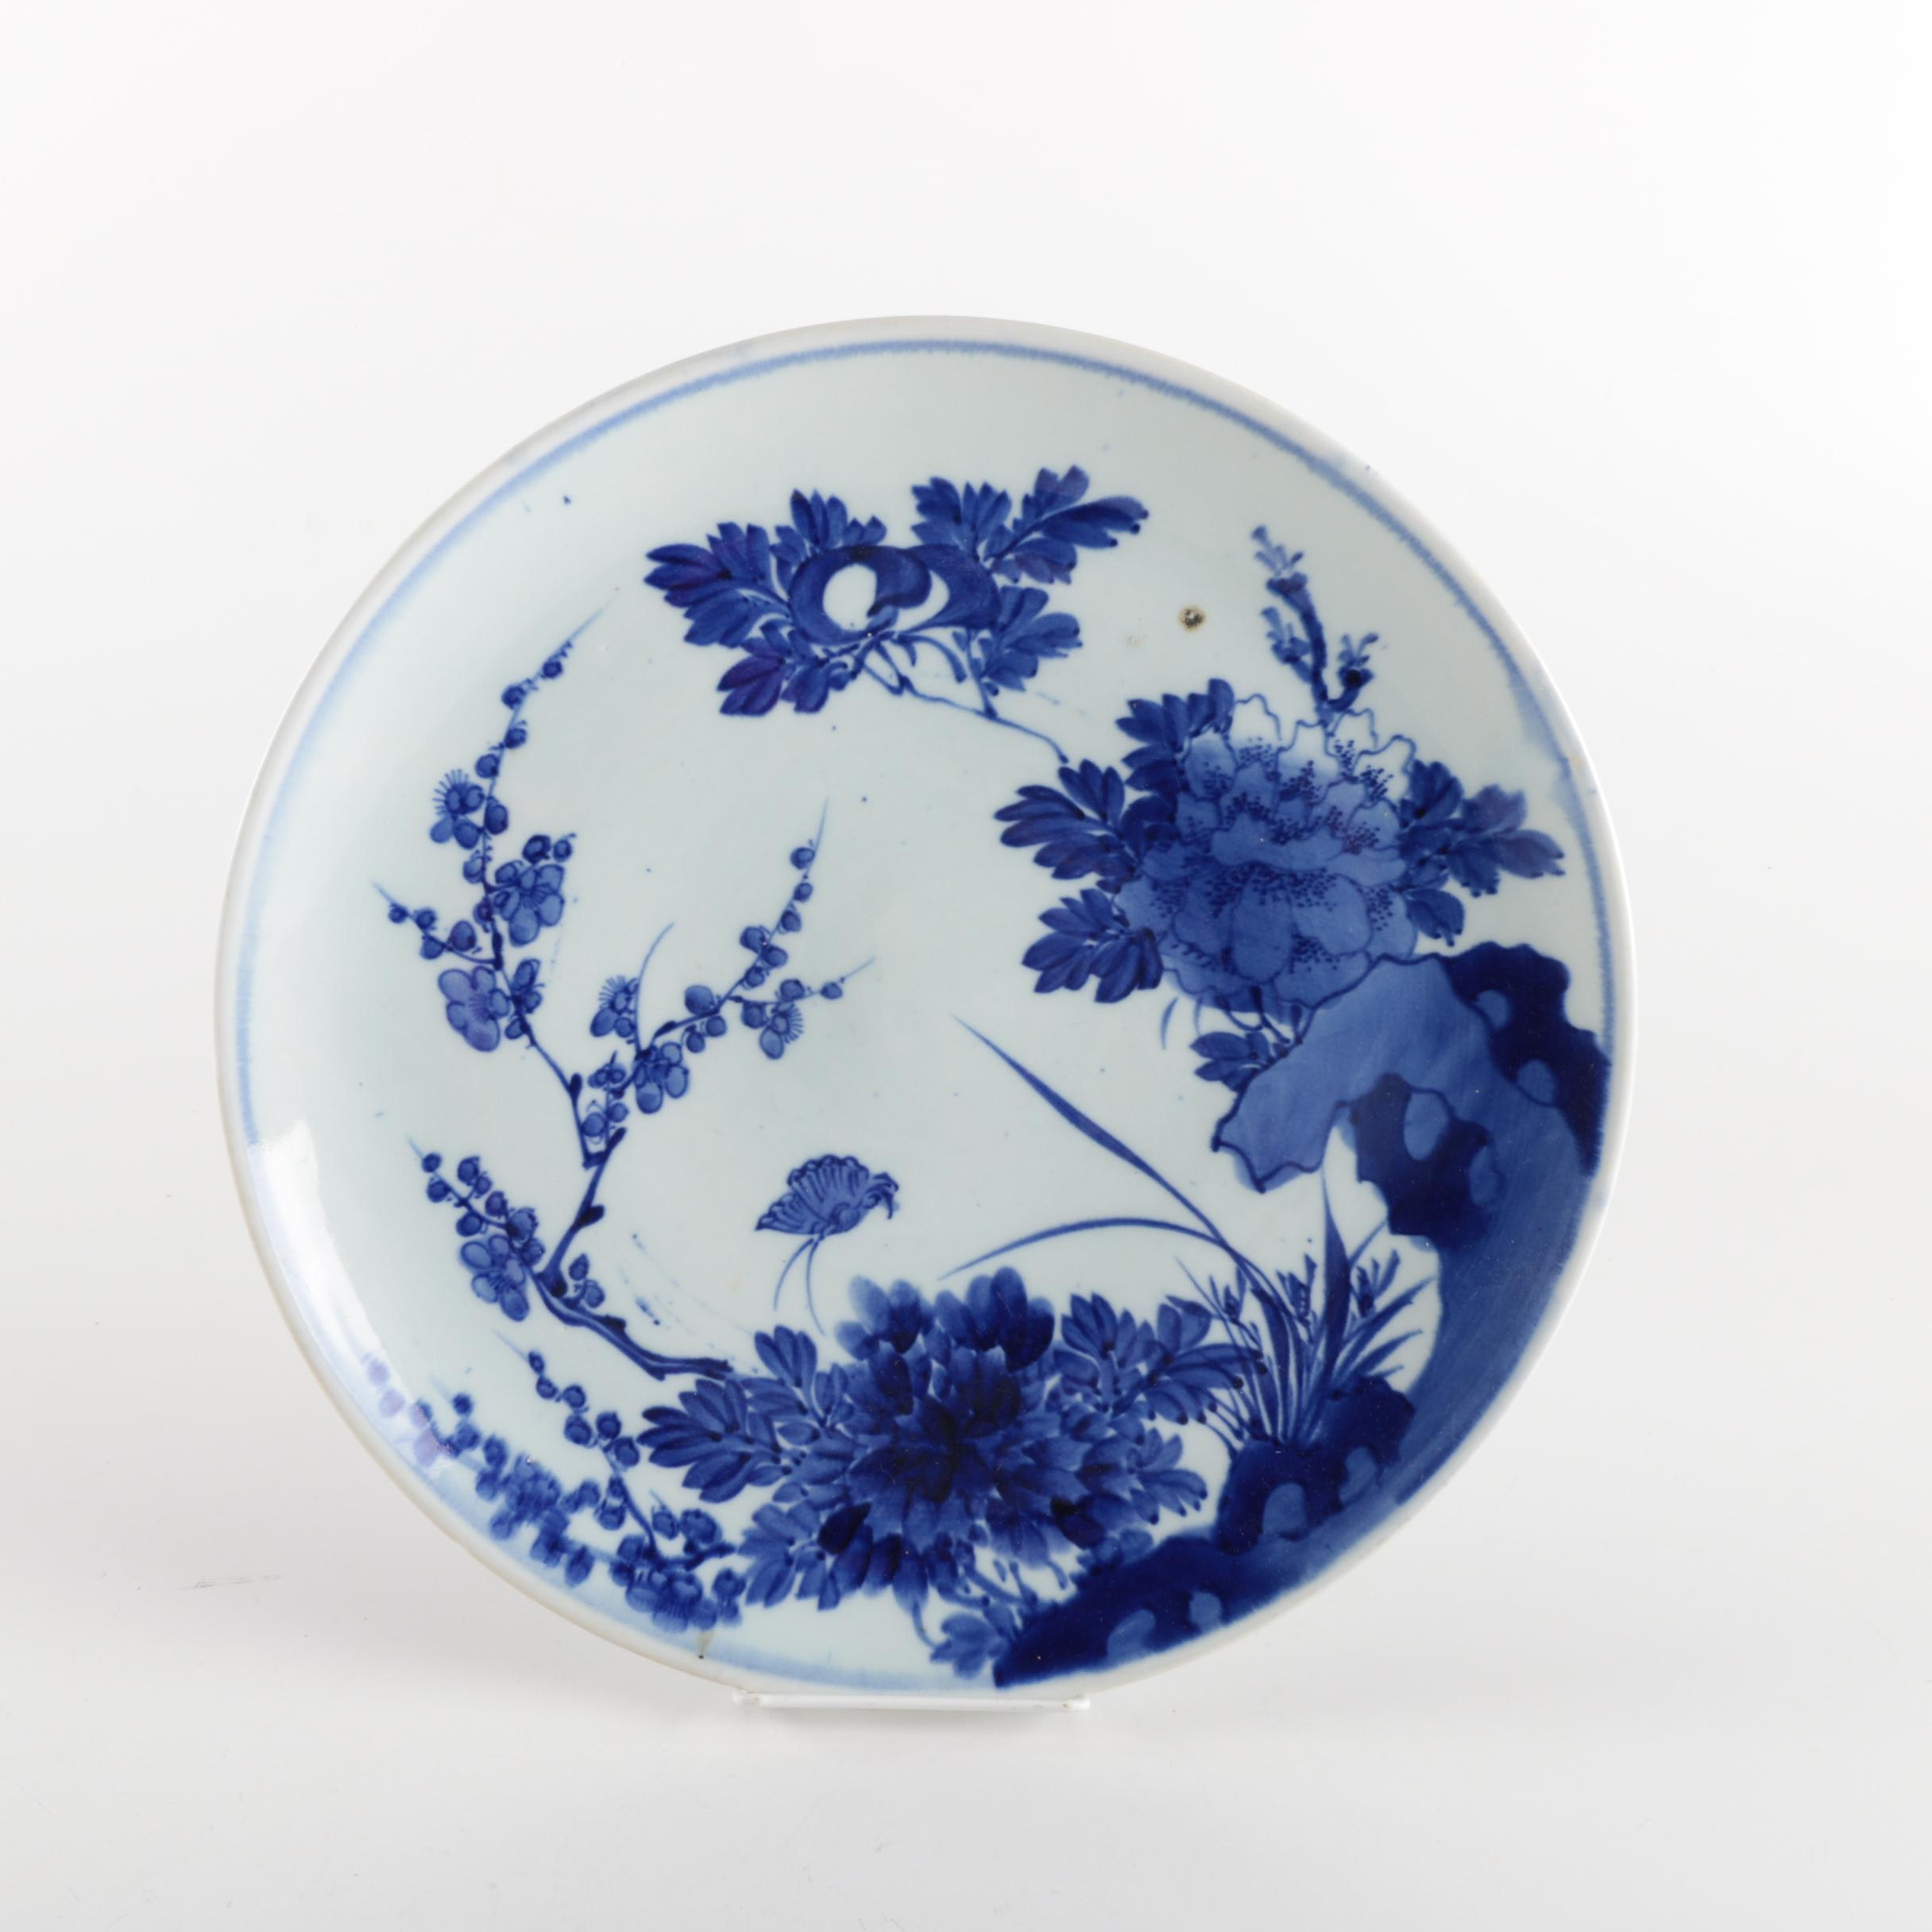 East Asian Blue and White Ceramic Plate